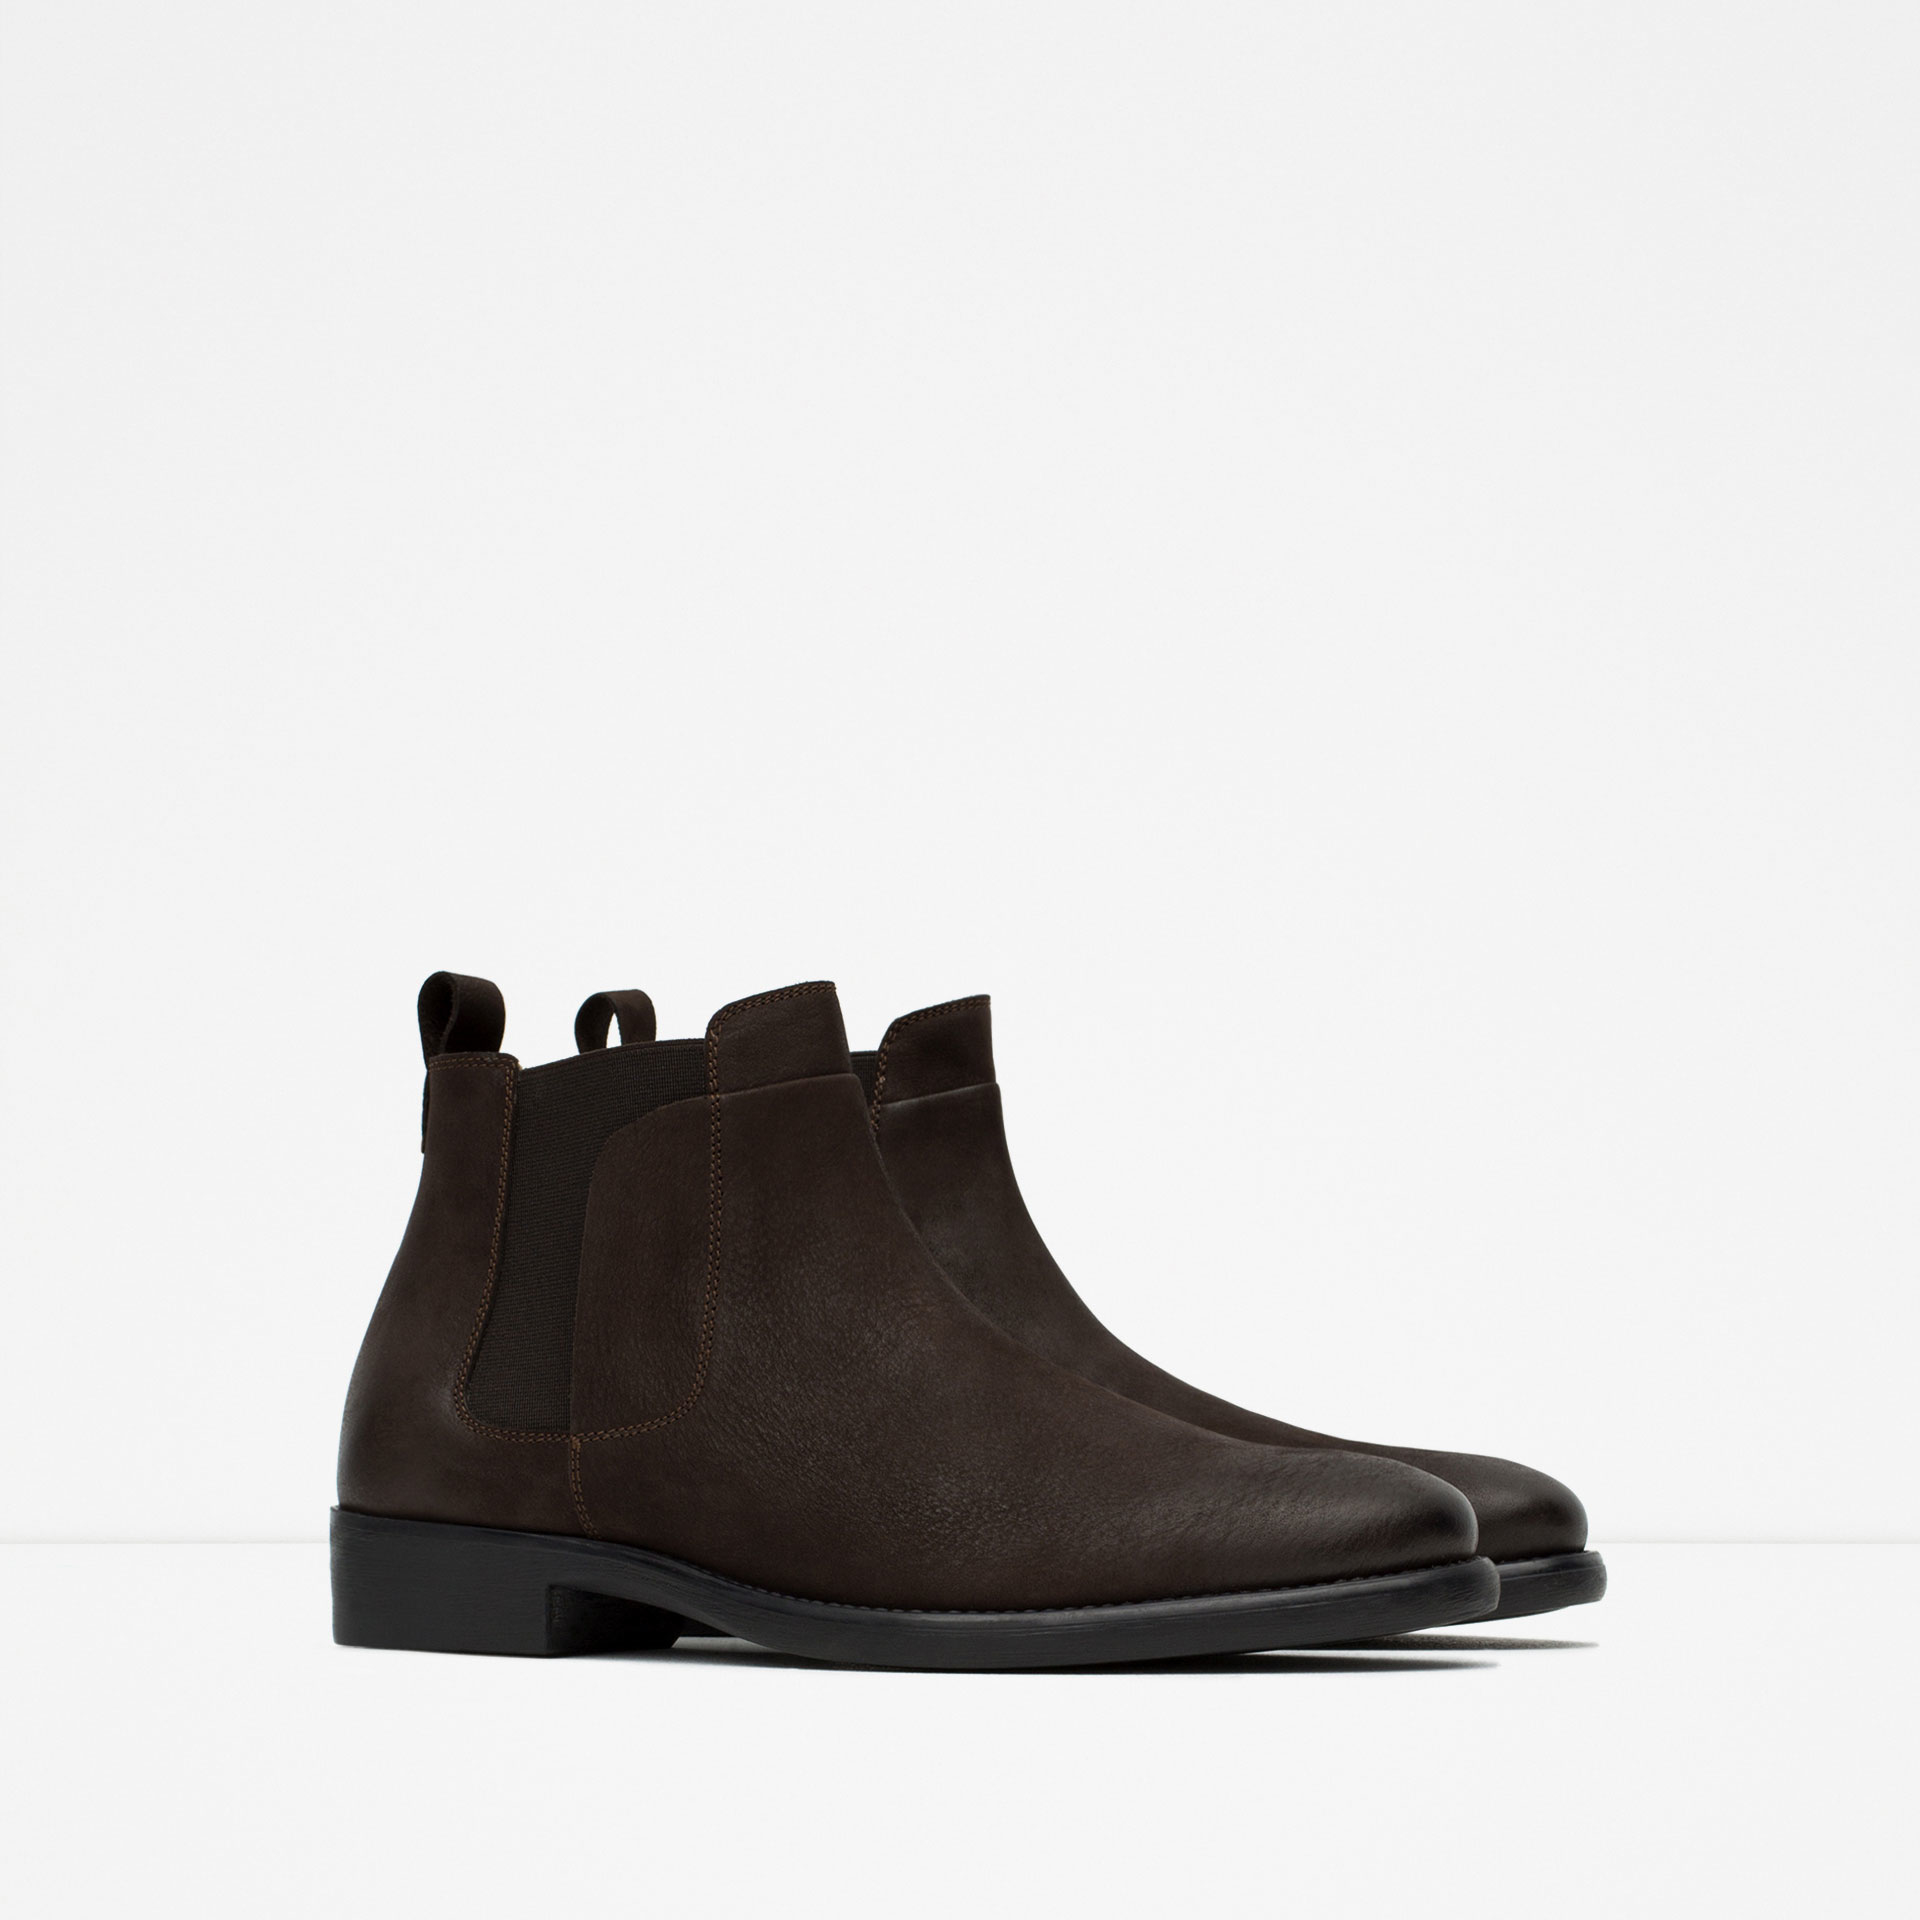 zara leather chelsea boots in brown for men lyst